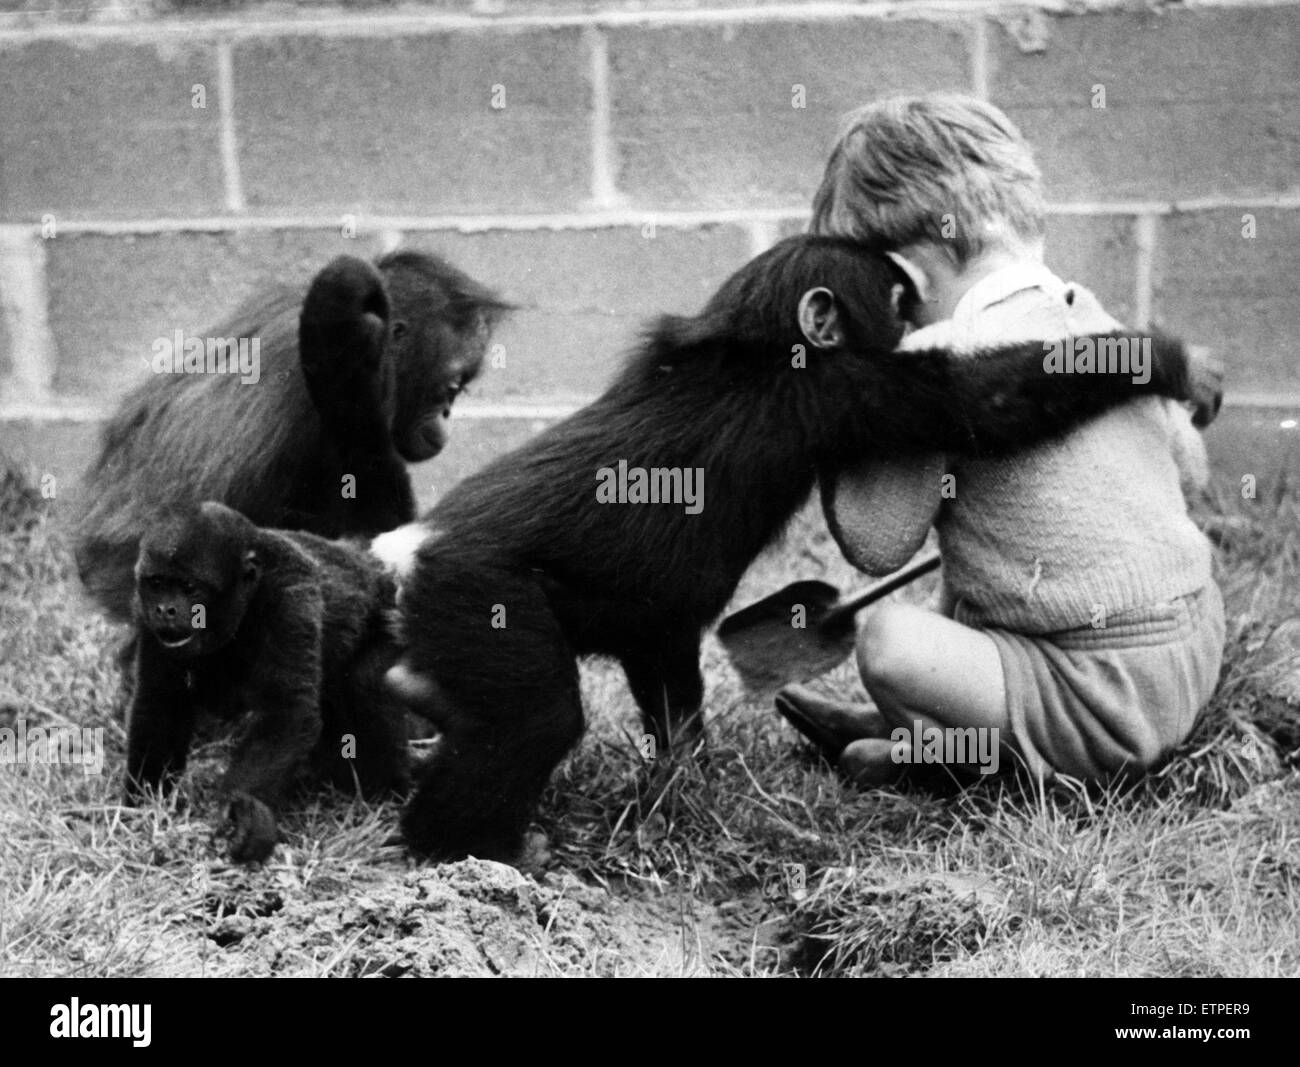 Children playing with monkeys at Chester Zoo, 16th May 1960